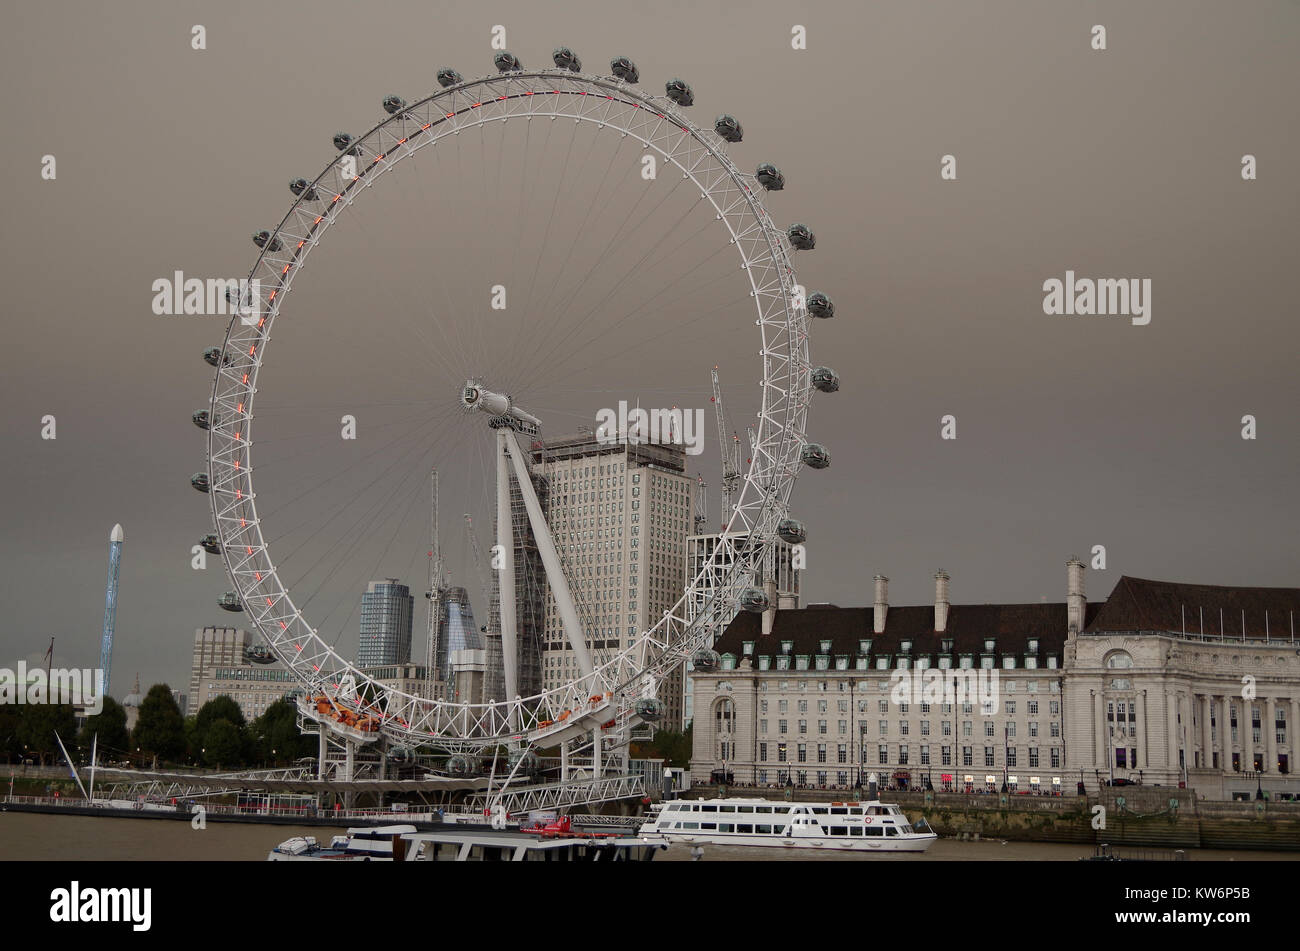 The South Bank, London Eye, GLC Building during the dust storm of October 16th, 2017 - Stock Image